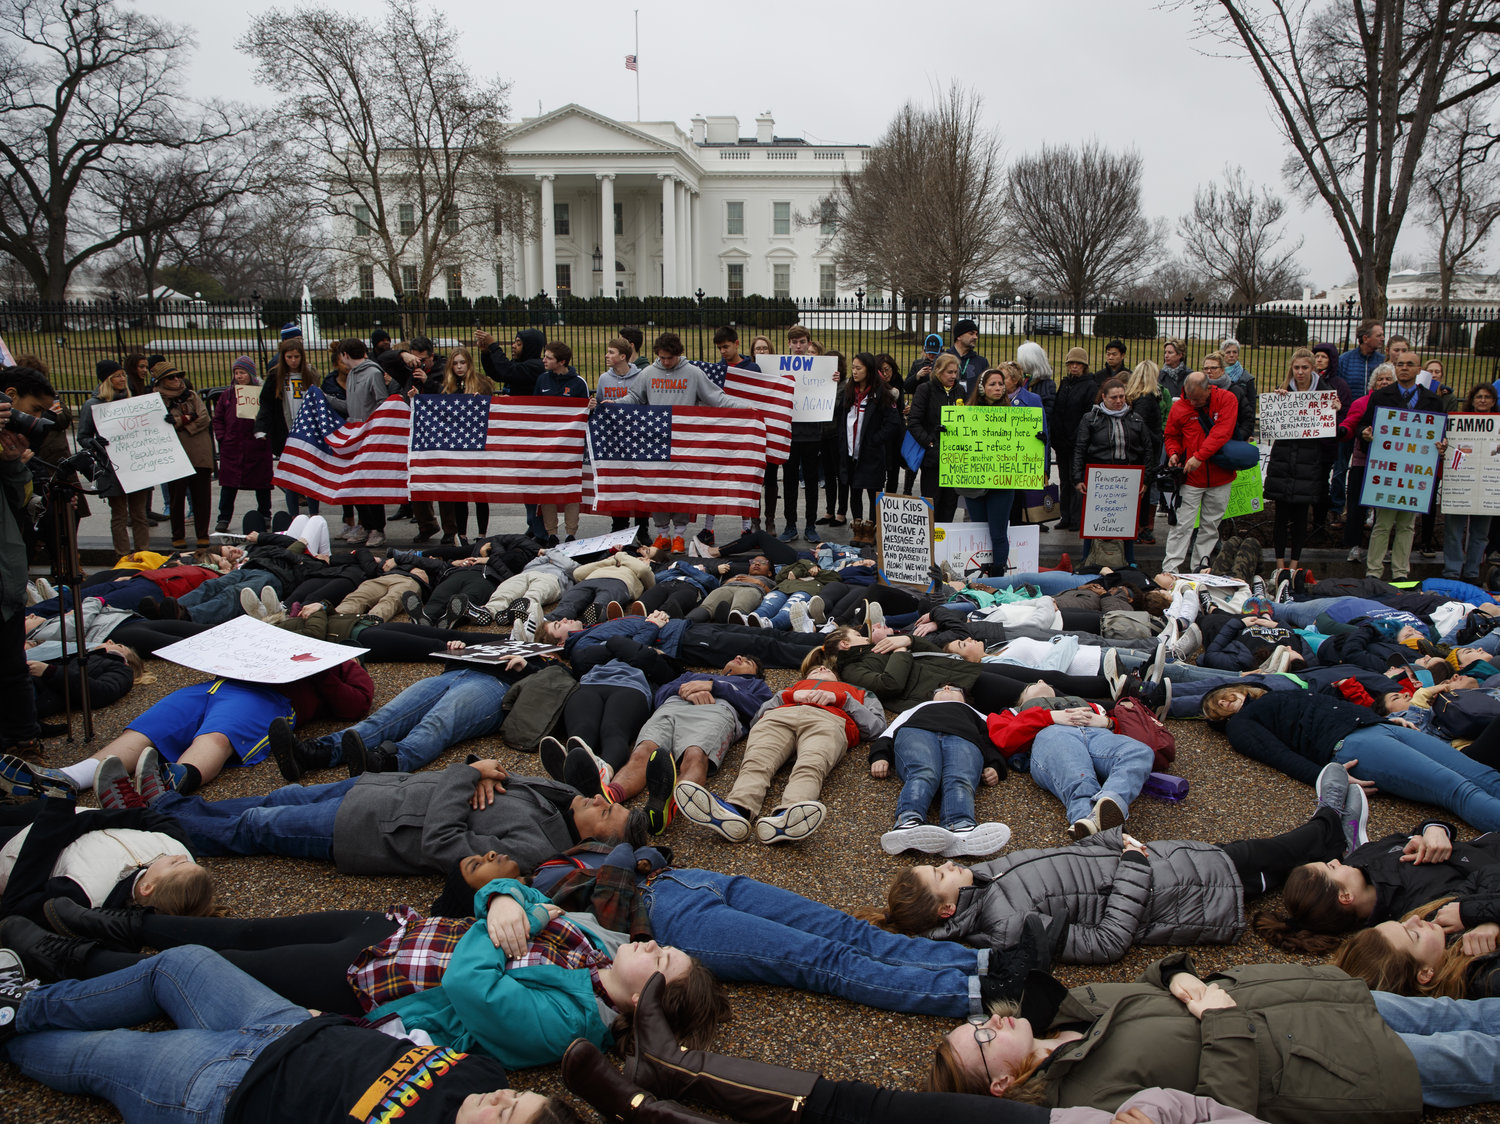 Students protest gun violence at the White House